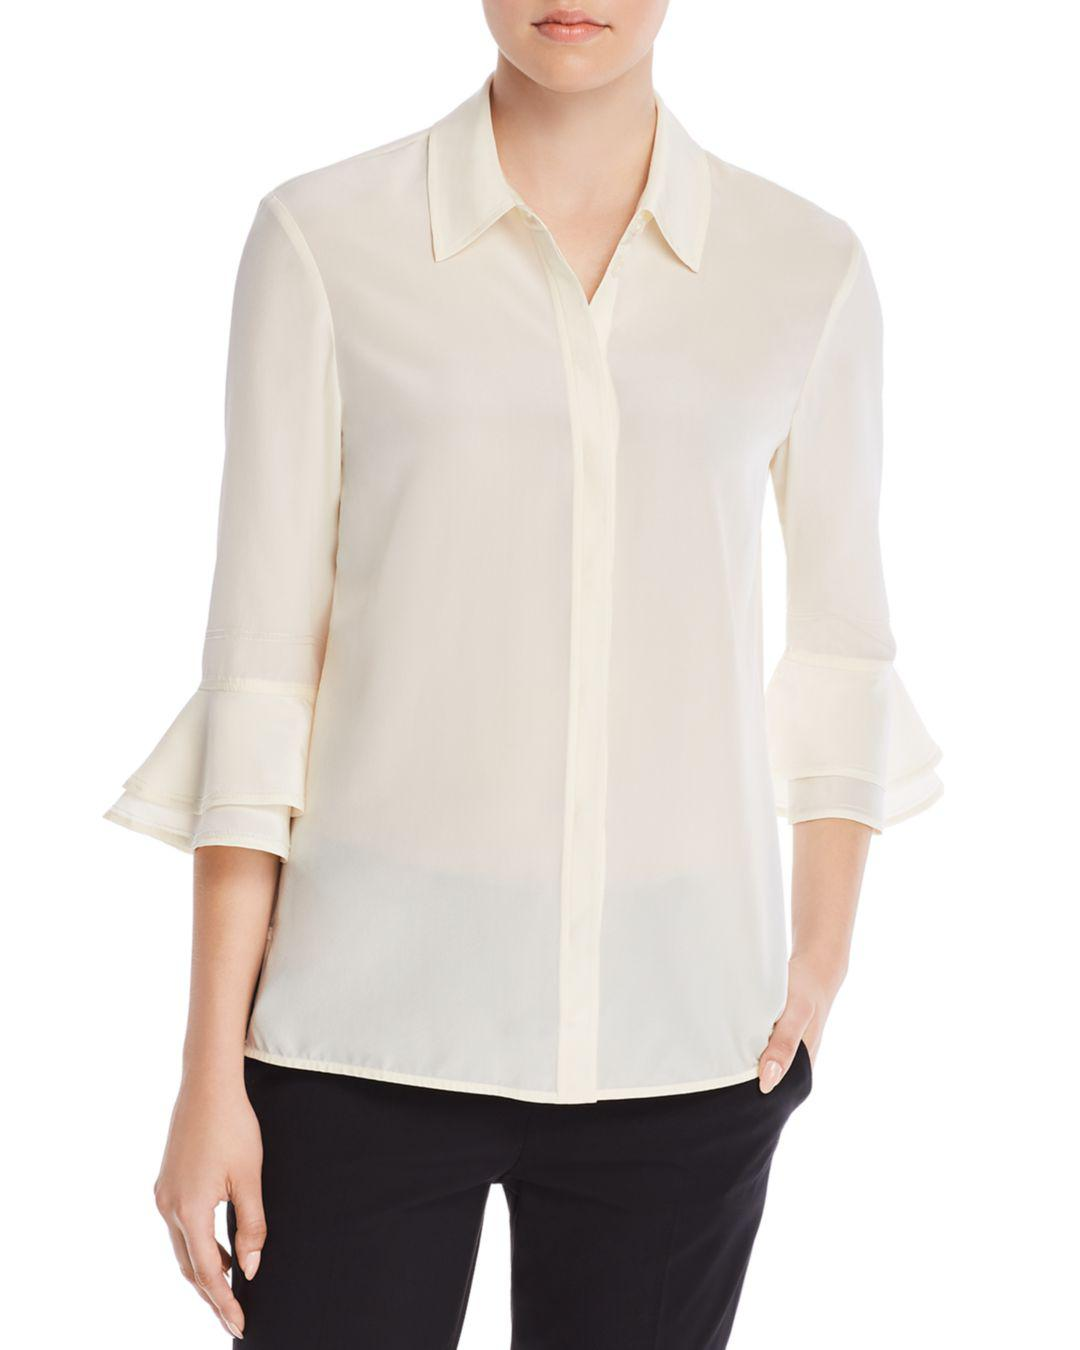 905f6e51c60 Tory Burch Arianne Tiered Bell-sleeve Silk Shirt in White - Lyst